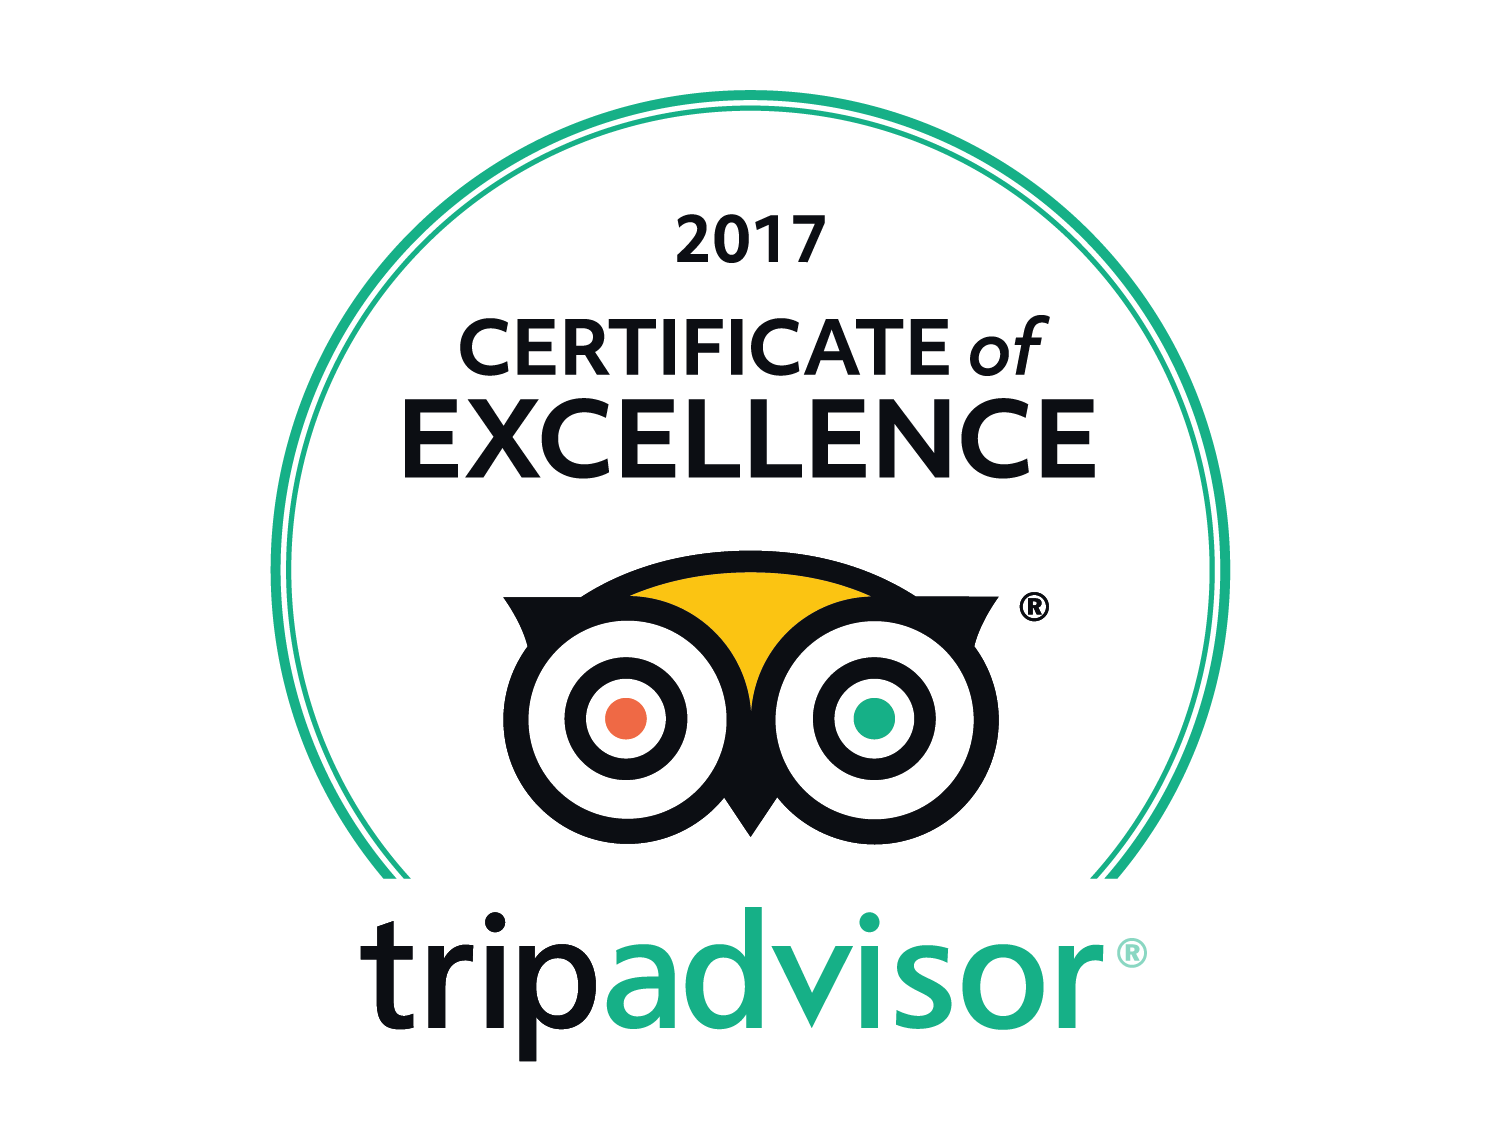 Trip Advisor 2017 - Certificate of Excellence